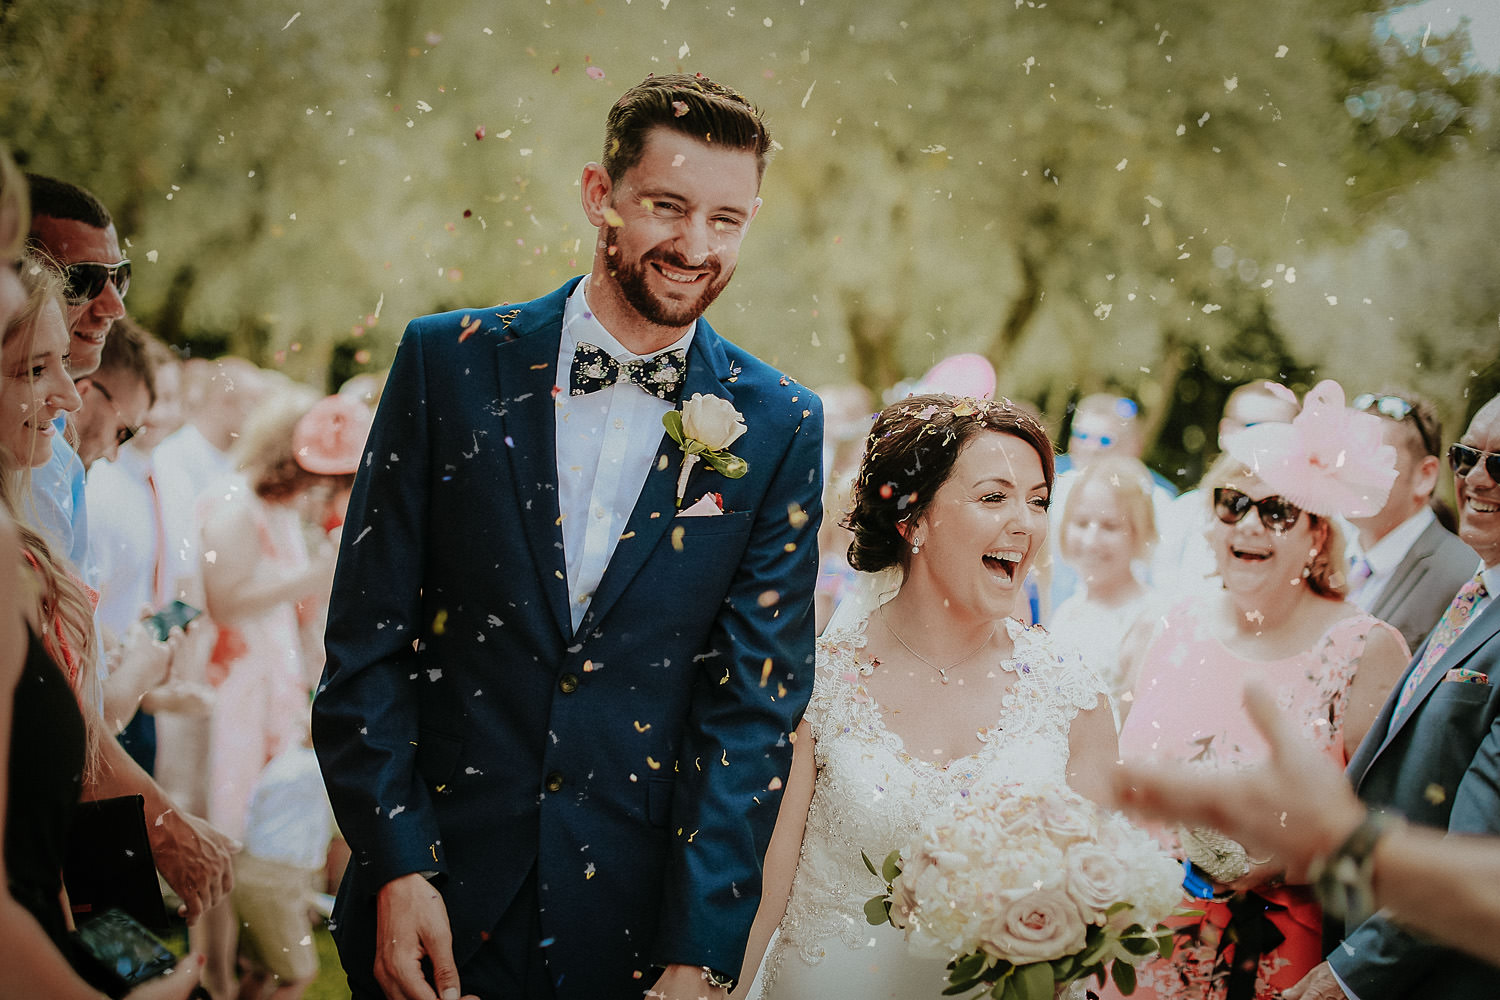 Bride and groom under confetti Castello di bibbione wedding photography Tuscany